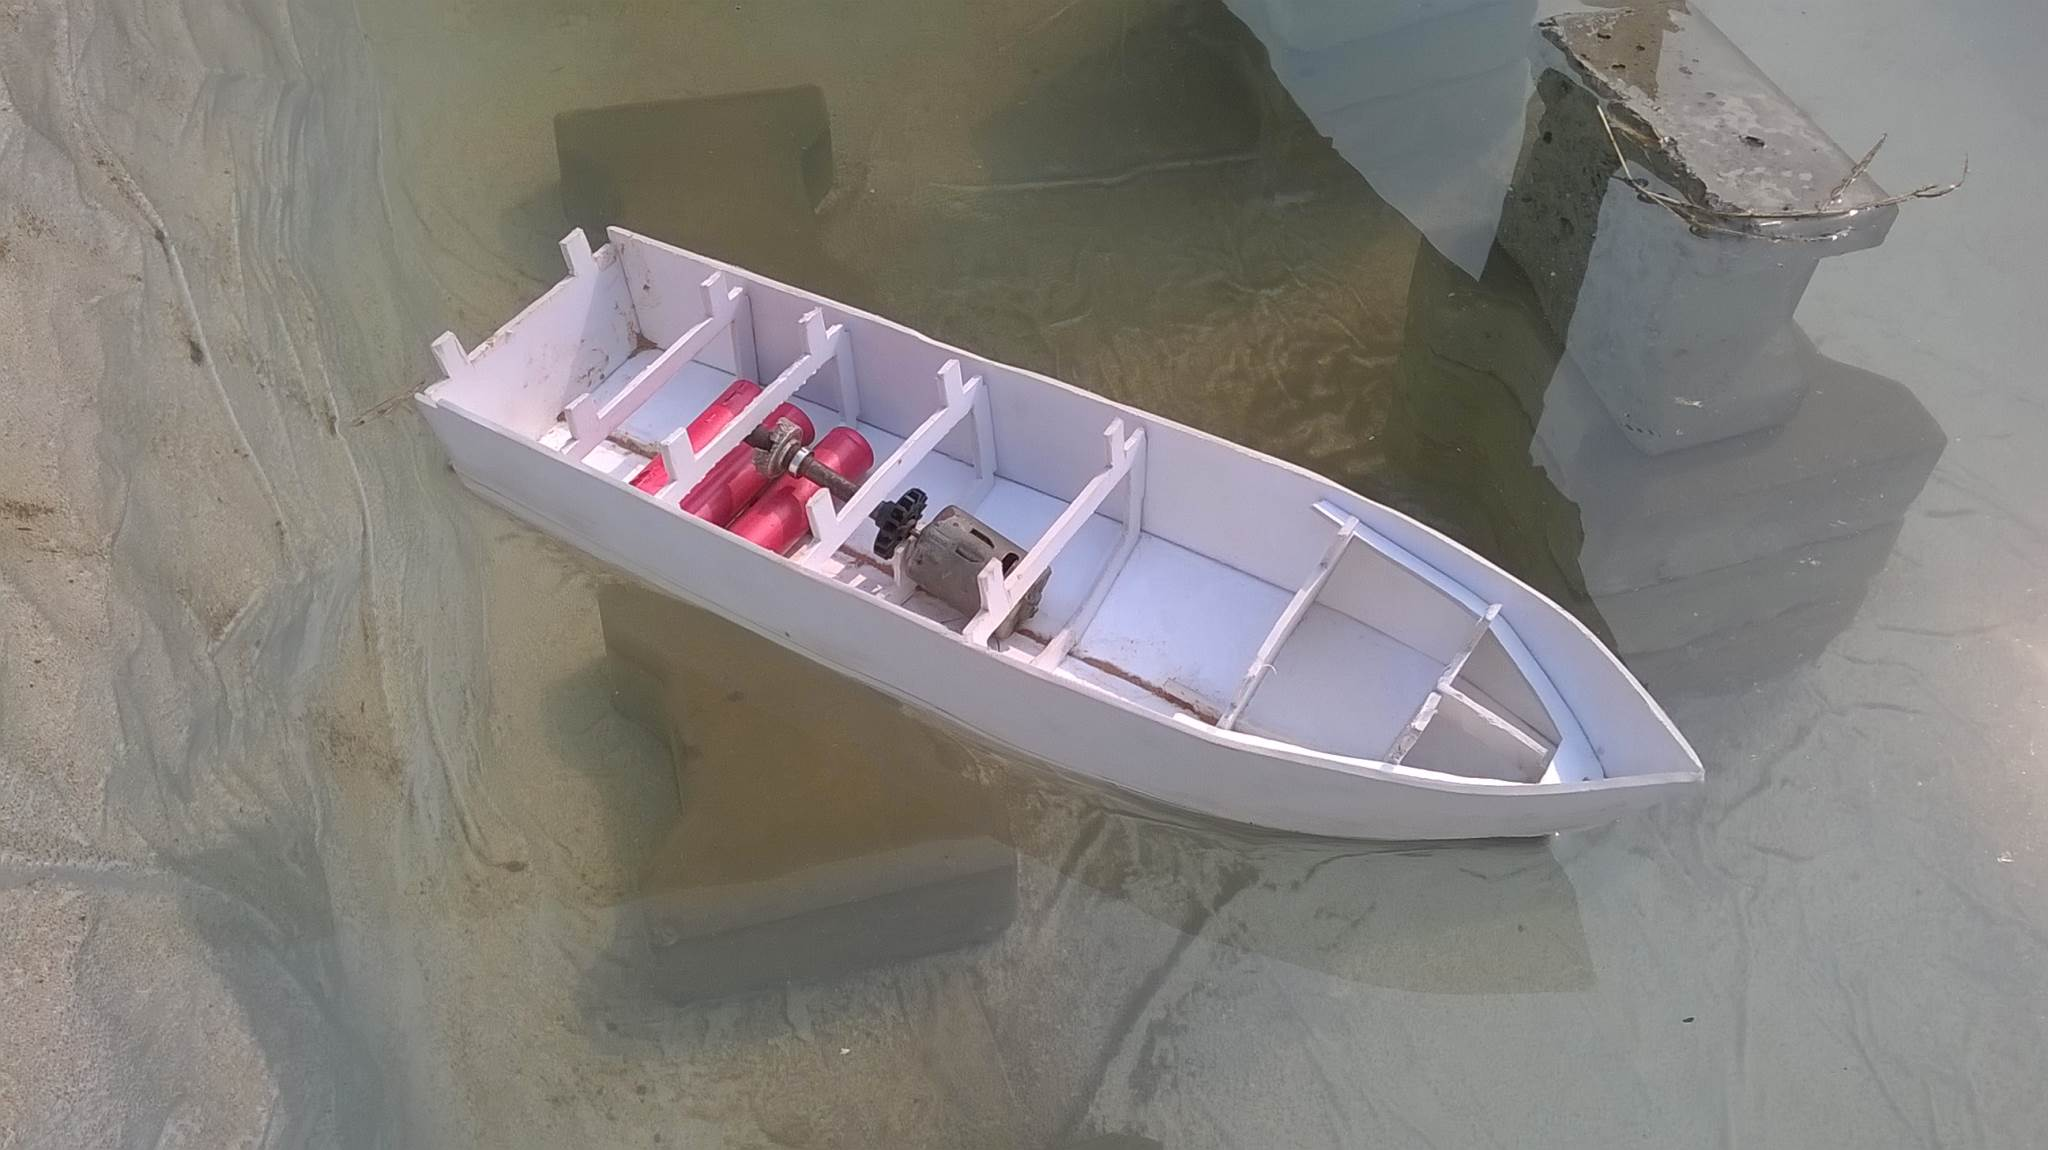 How to make an RC Boat with Brushed DC Motor?